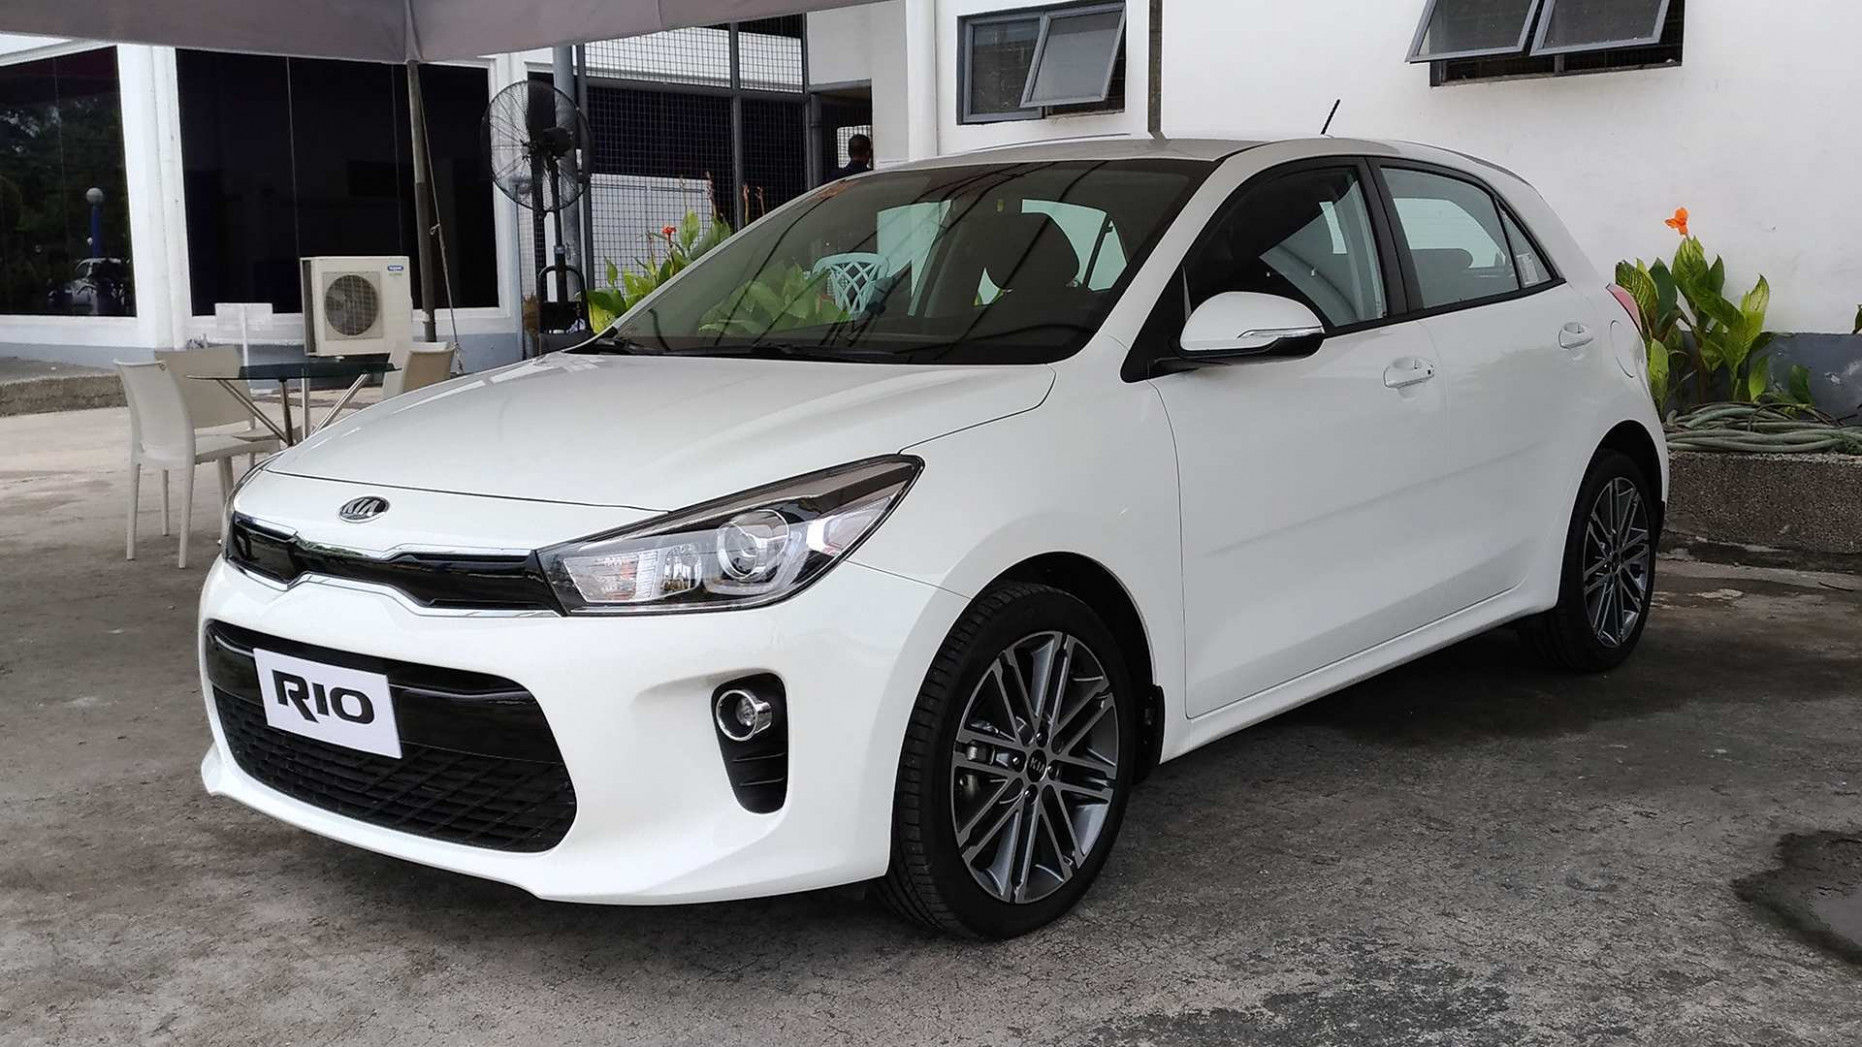 11 A Kia Rio Quinto 11 Price - Car Review 11 : Car Review 11 - kia quinto 2020